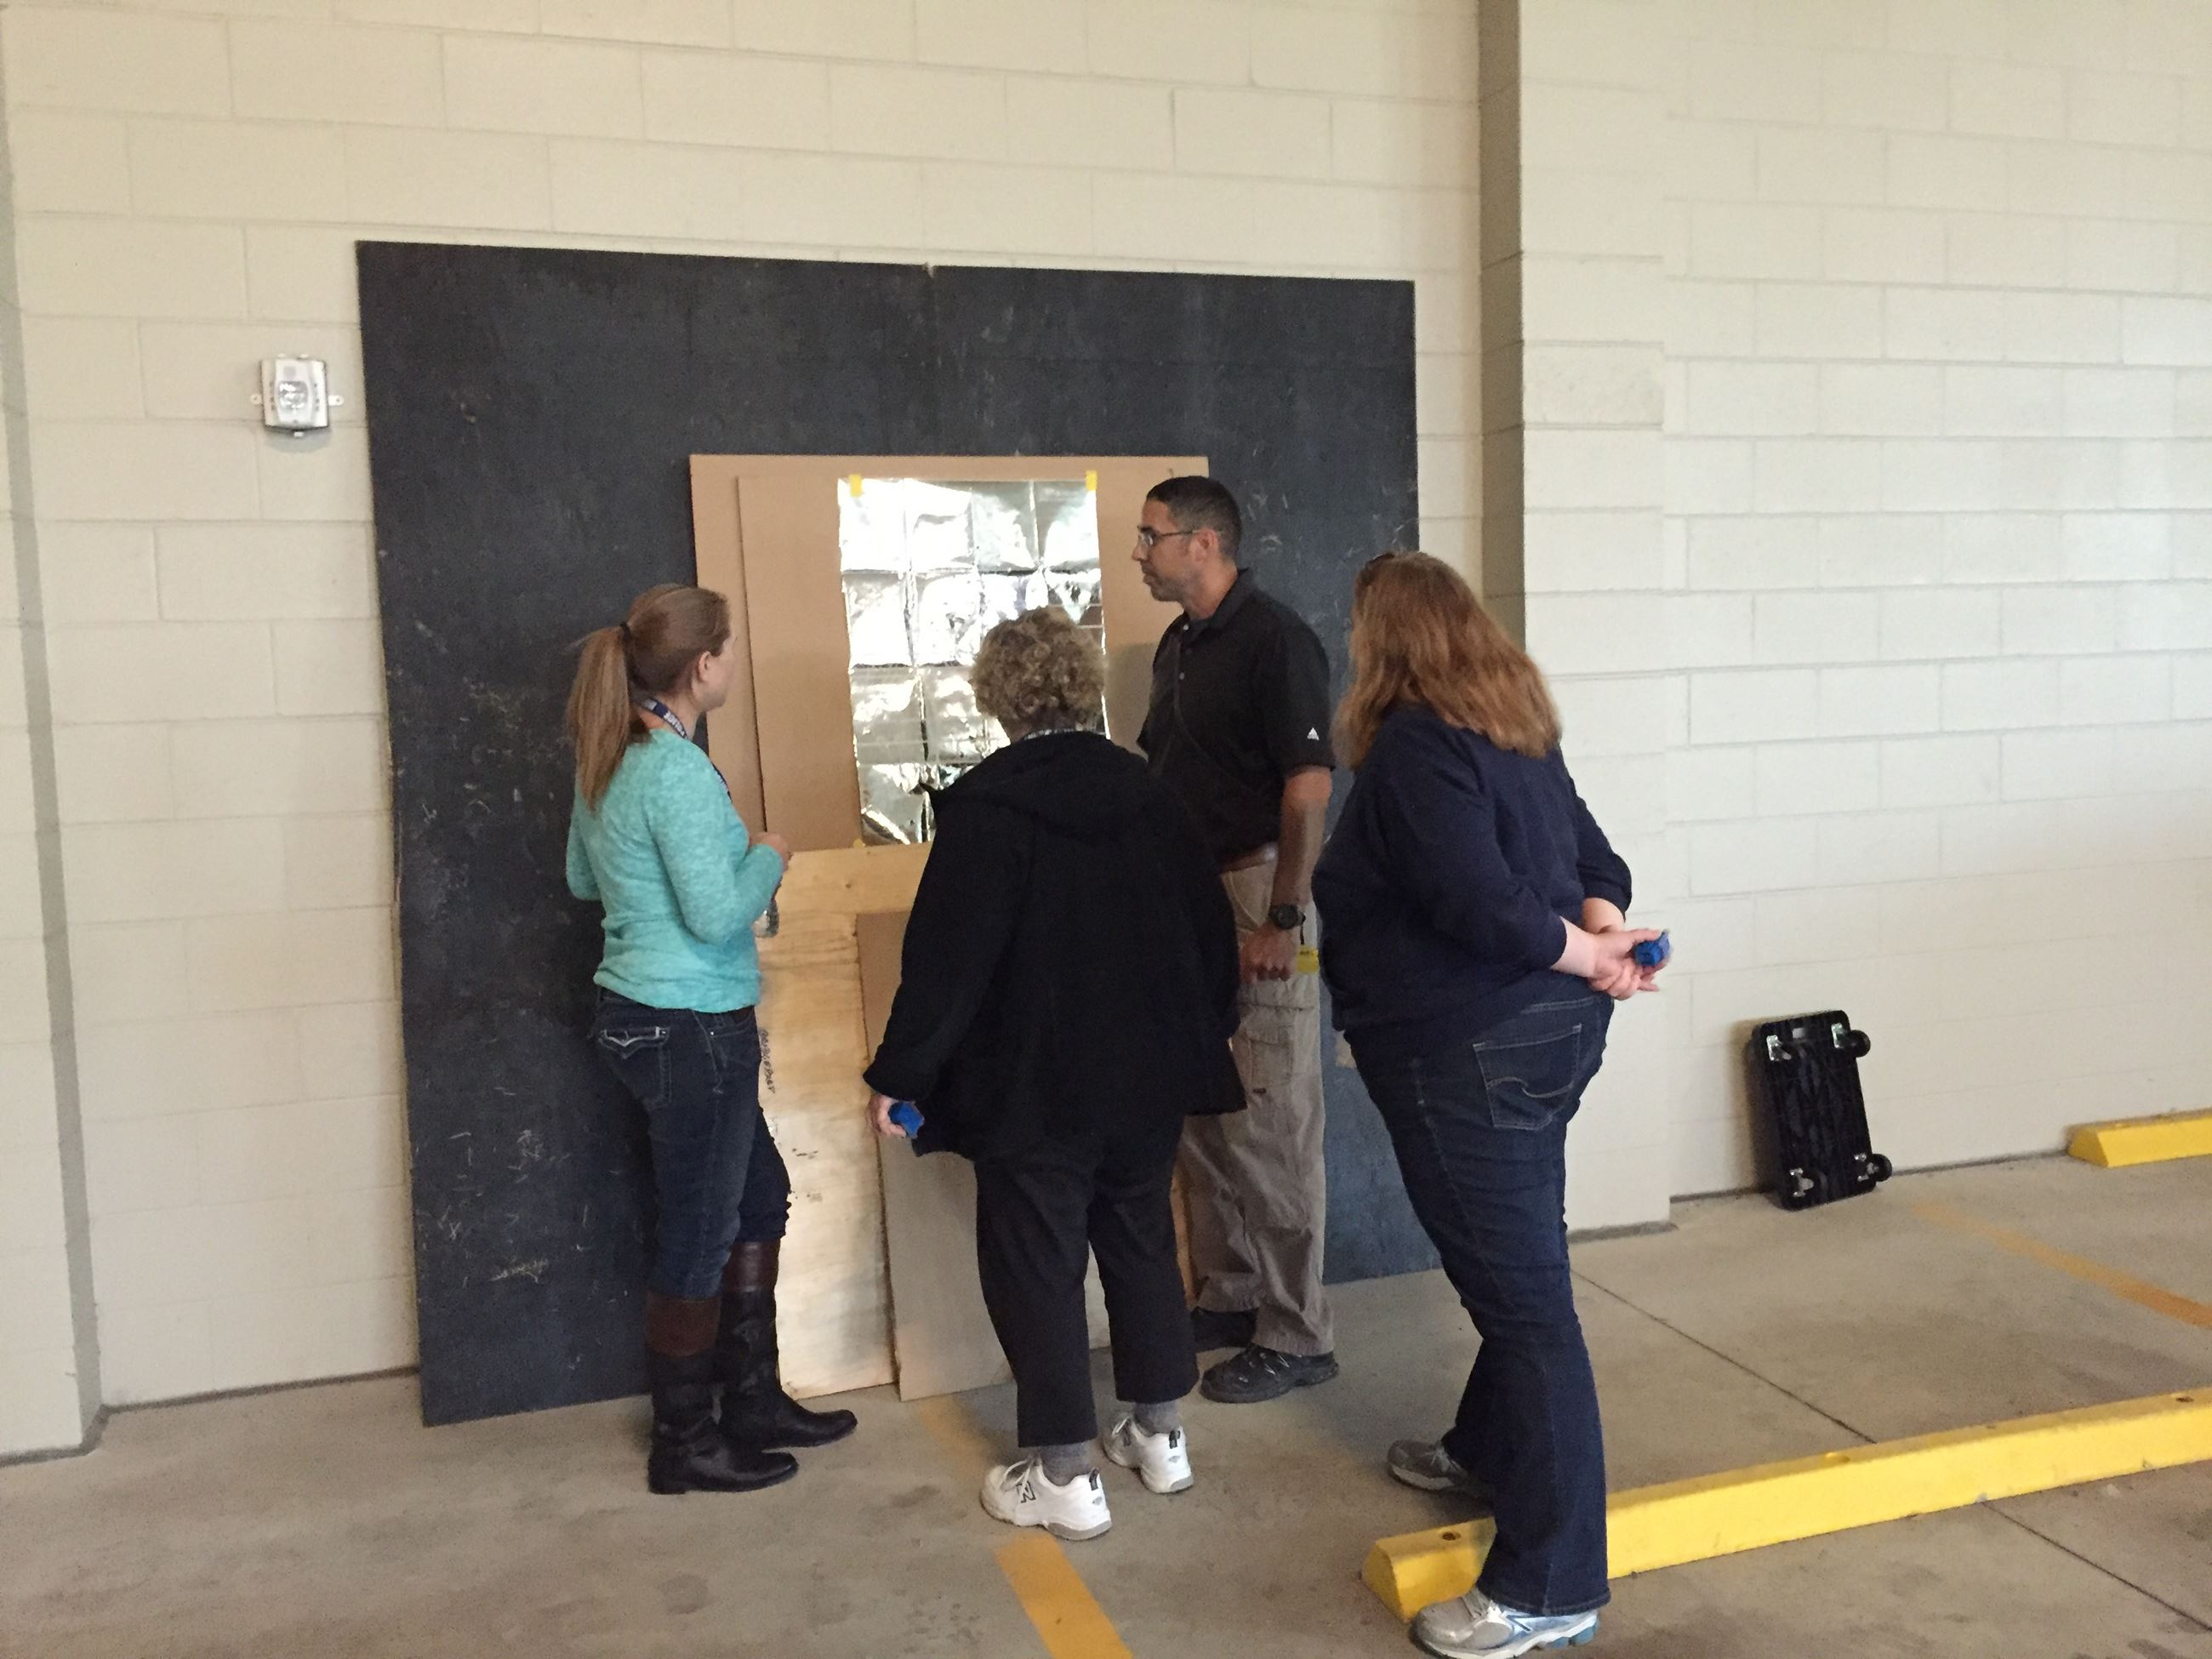 Group looks at shooting target